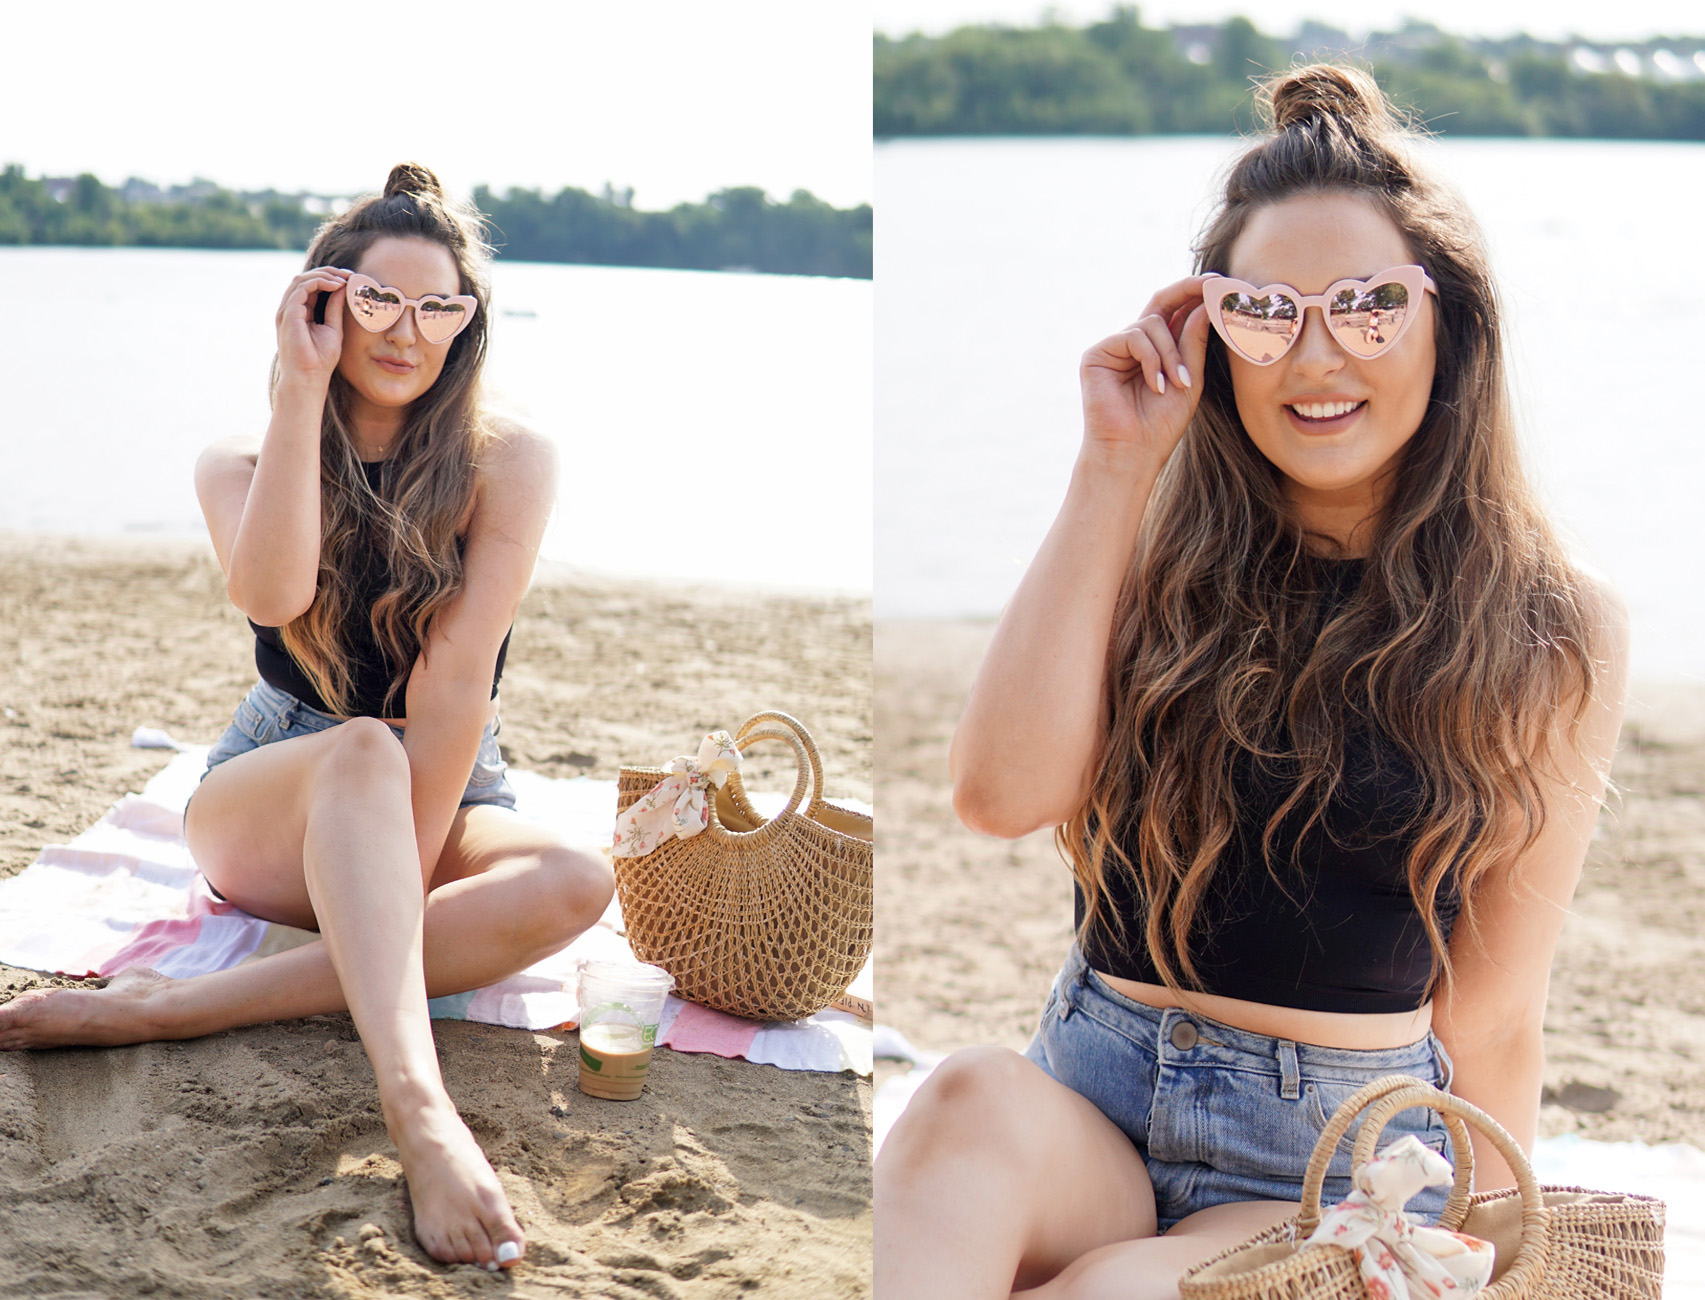 Mash Elle summer beach topknot hair style idea heart sunglasses black crop top jean shorts